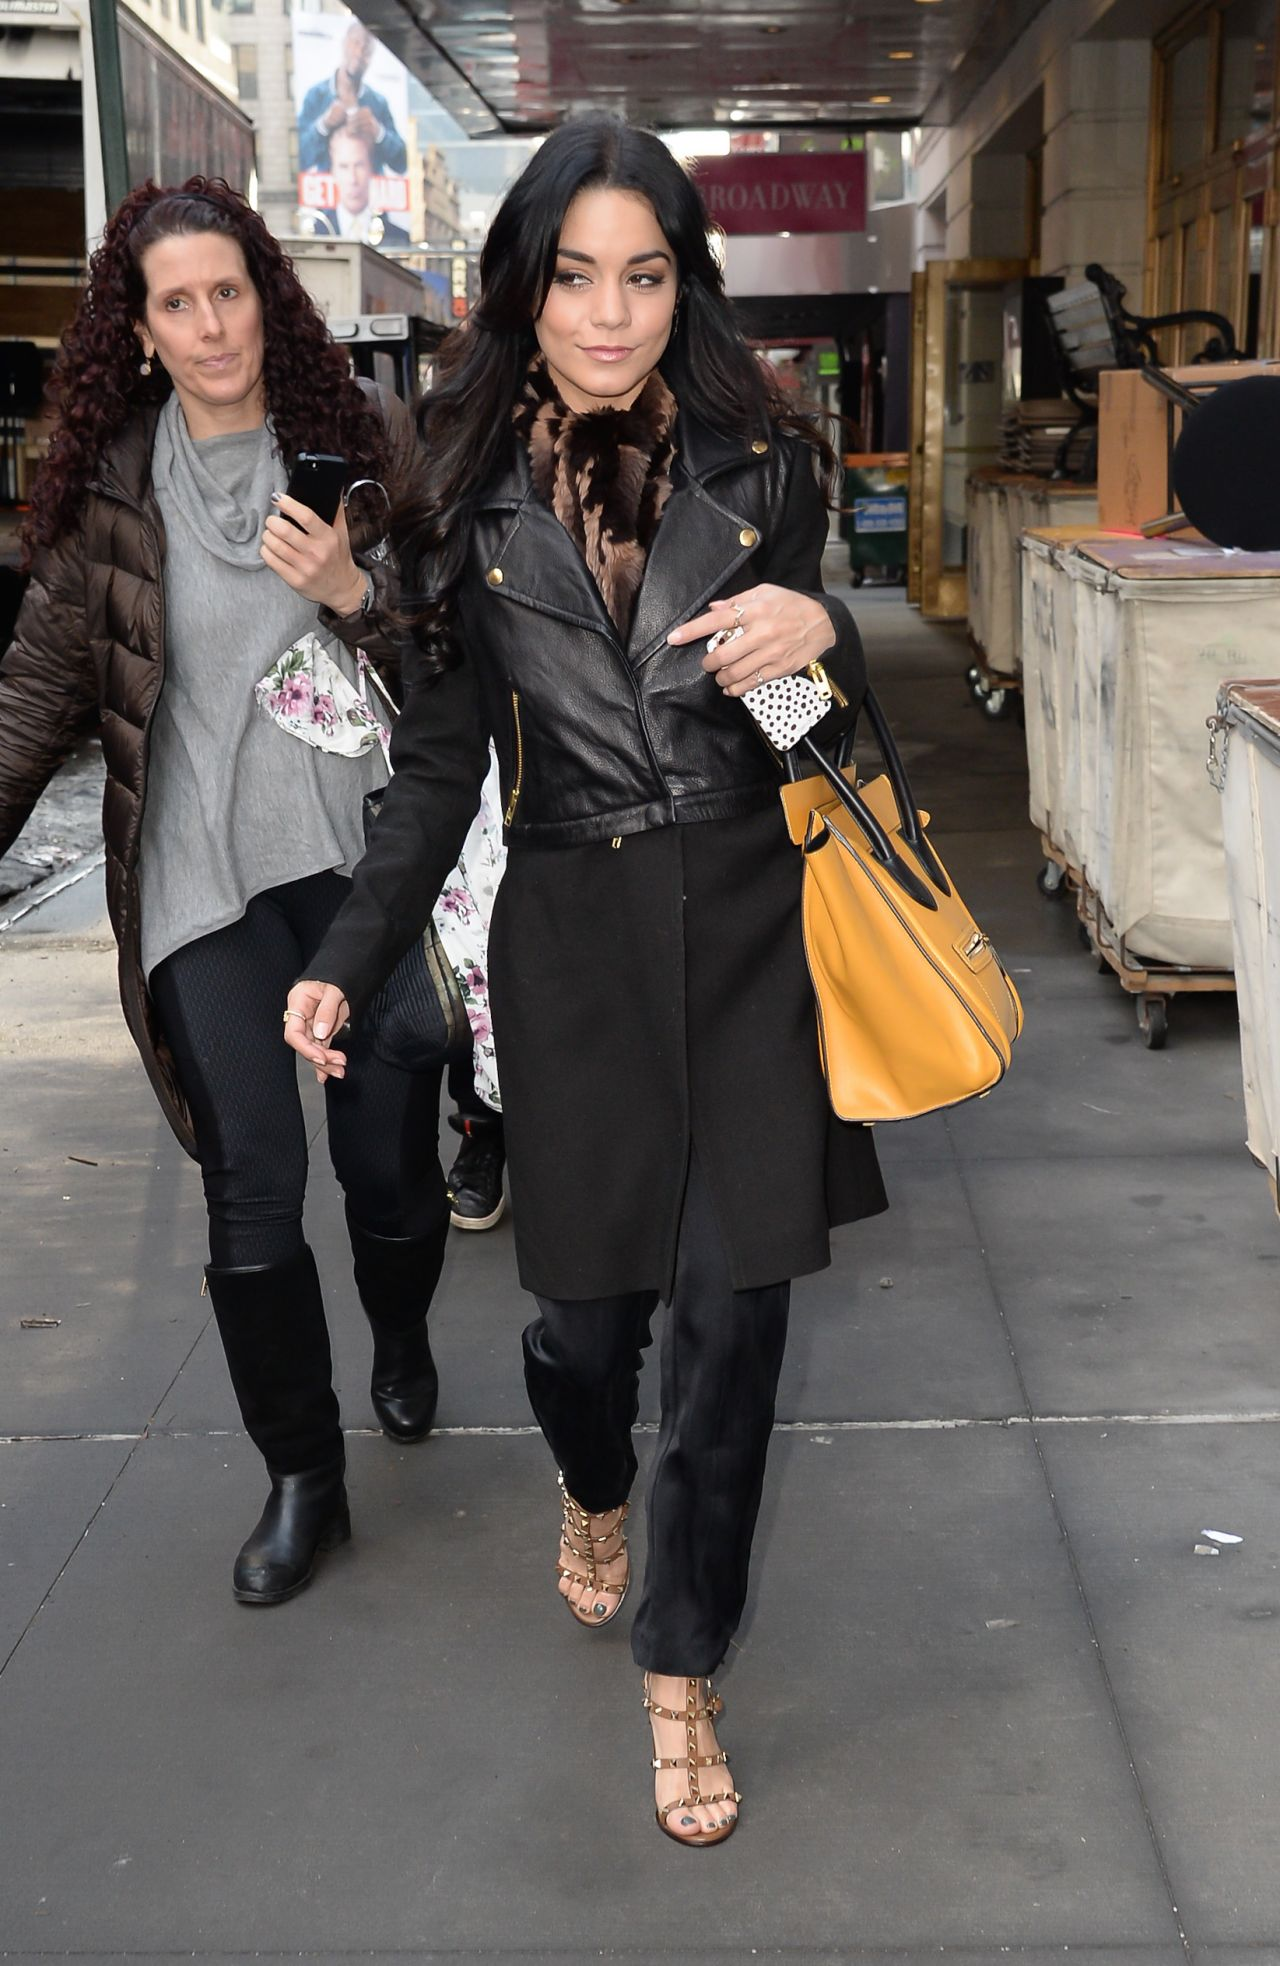 Vanessa Hudgens at the Neil Simon Theatre in New York City, March 2015